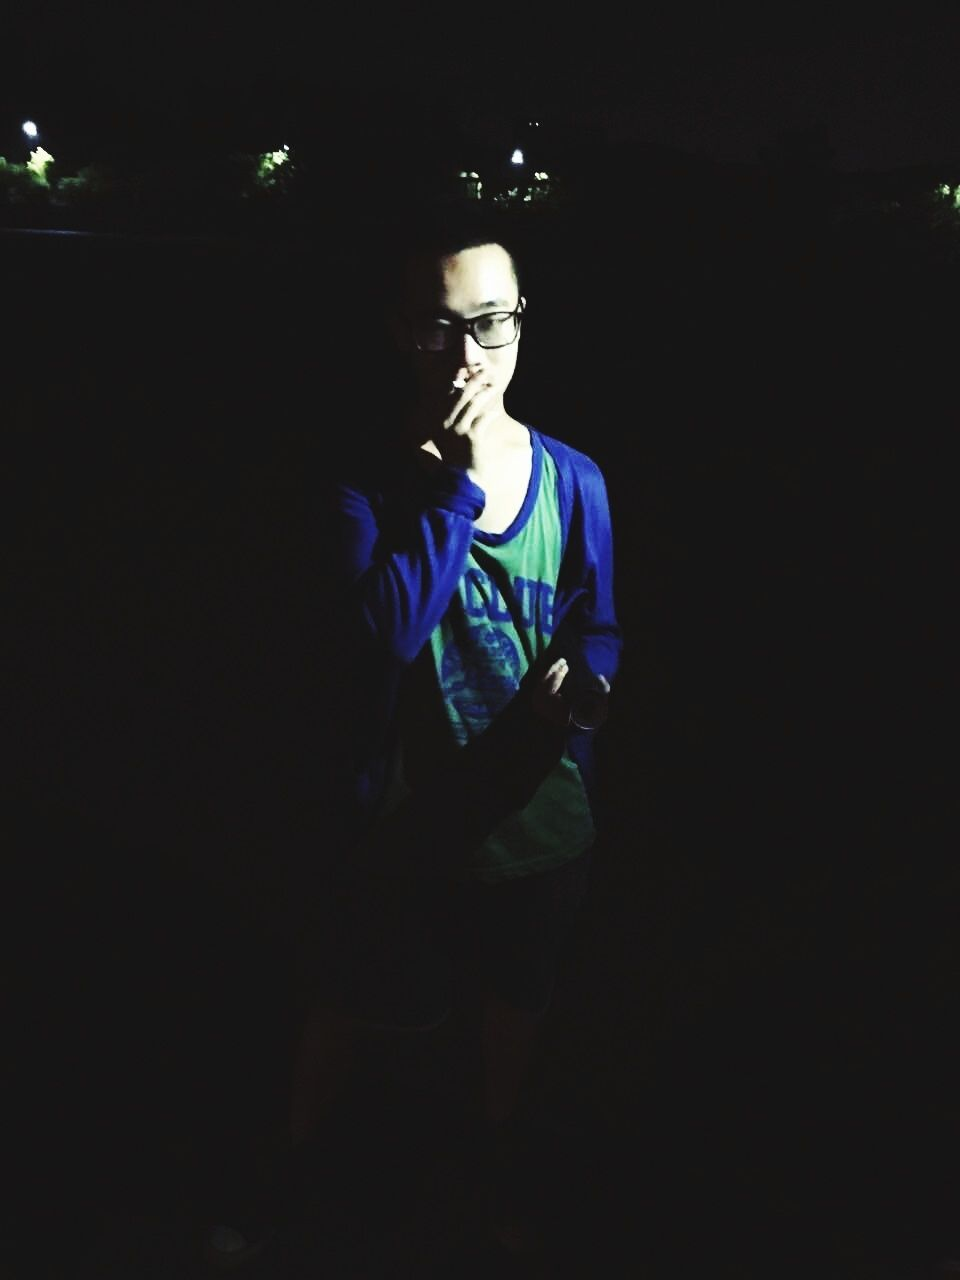 dark, indoors, one person, night, men, standing, illuminated, one man only, people